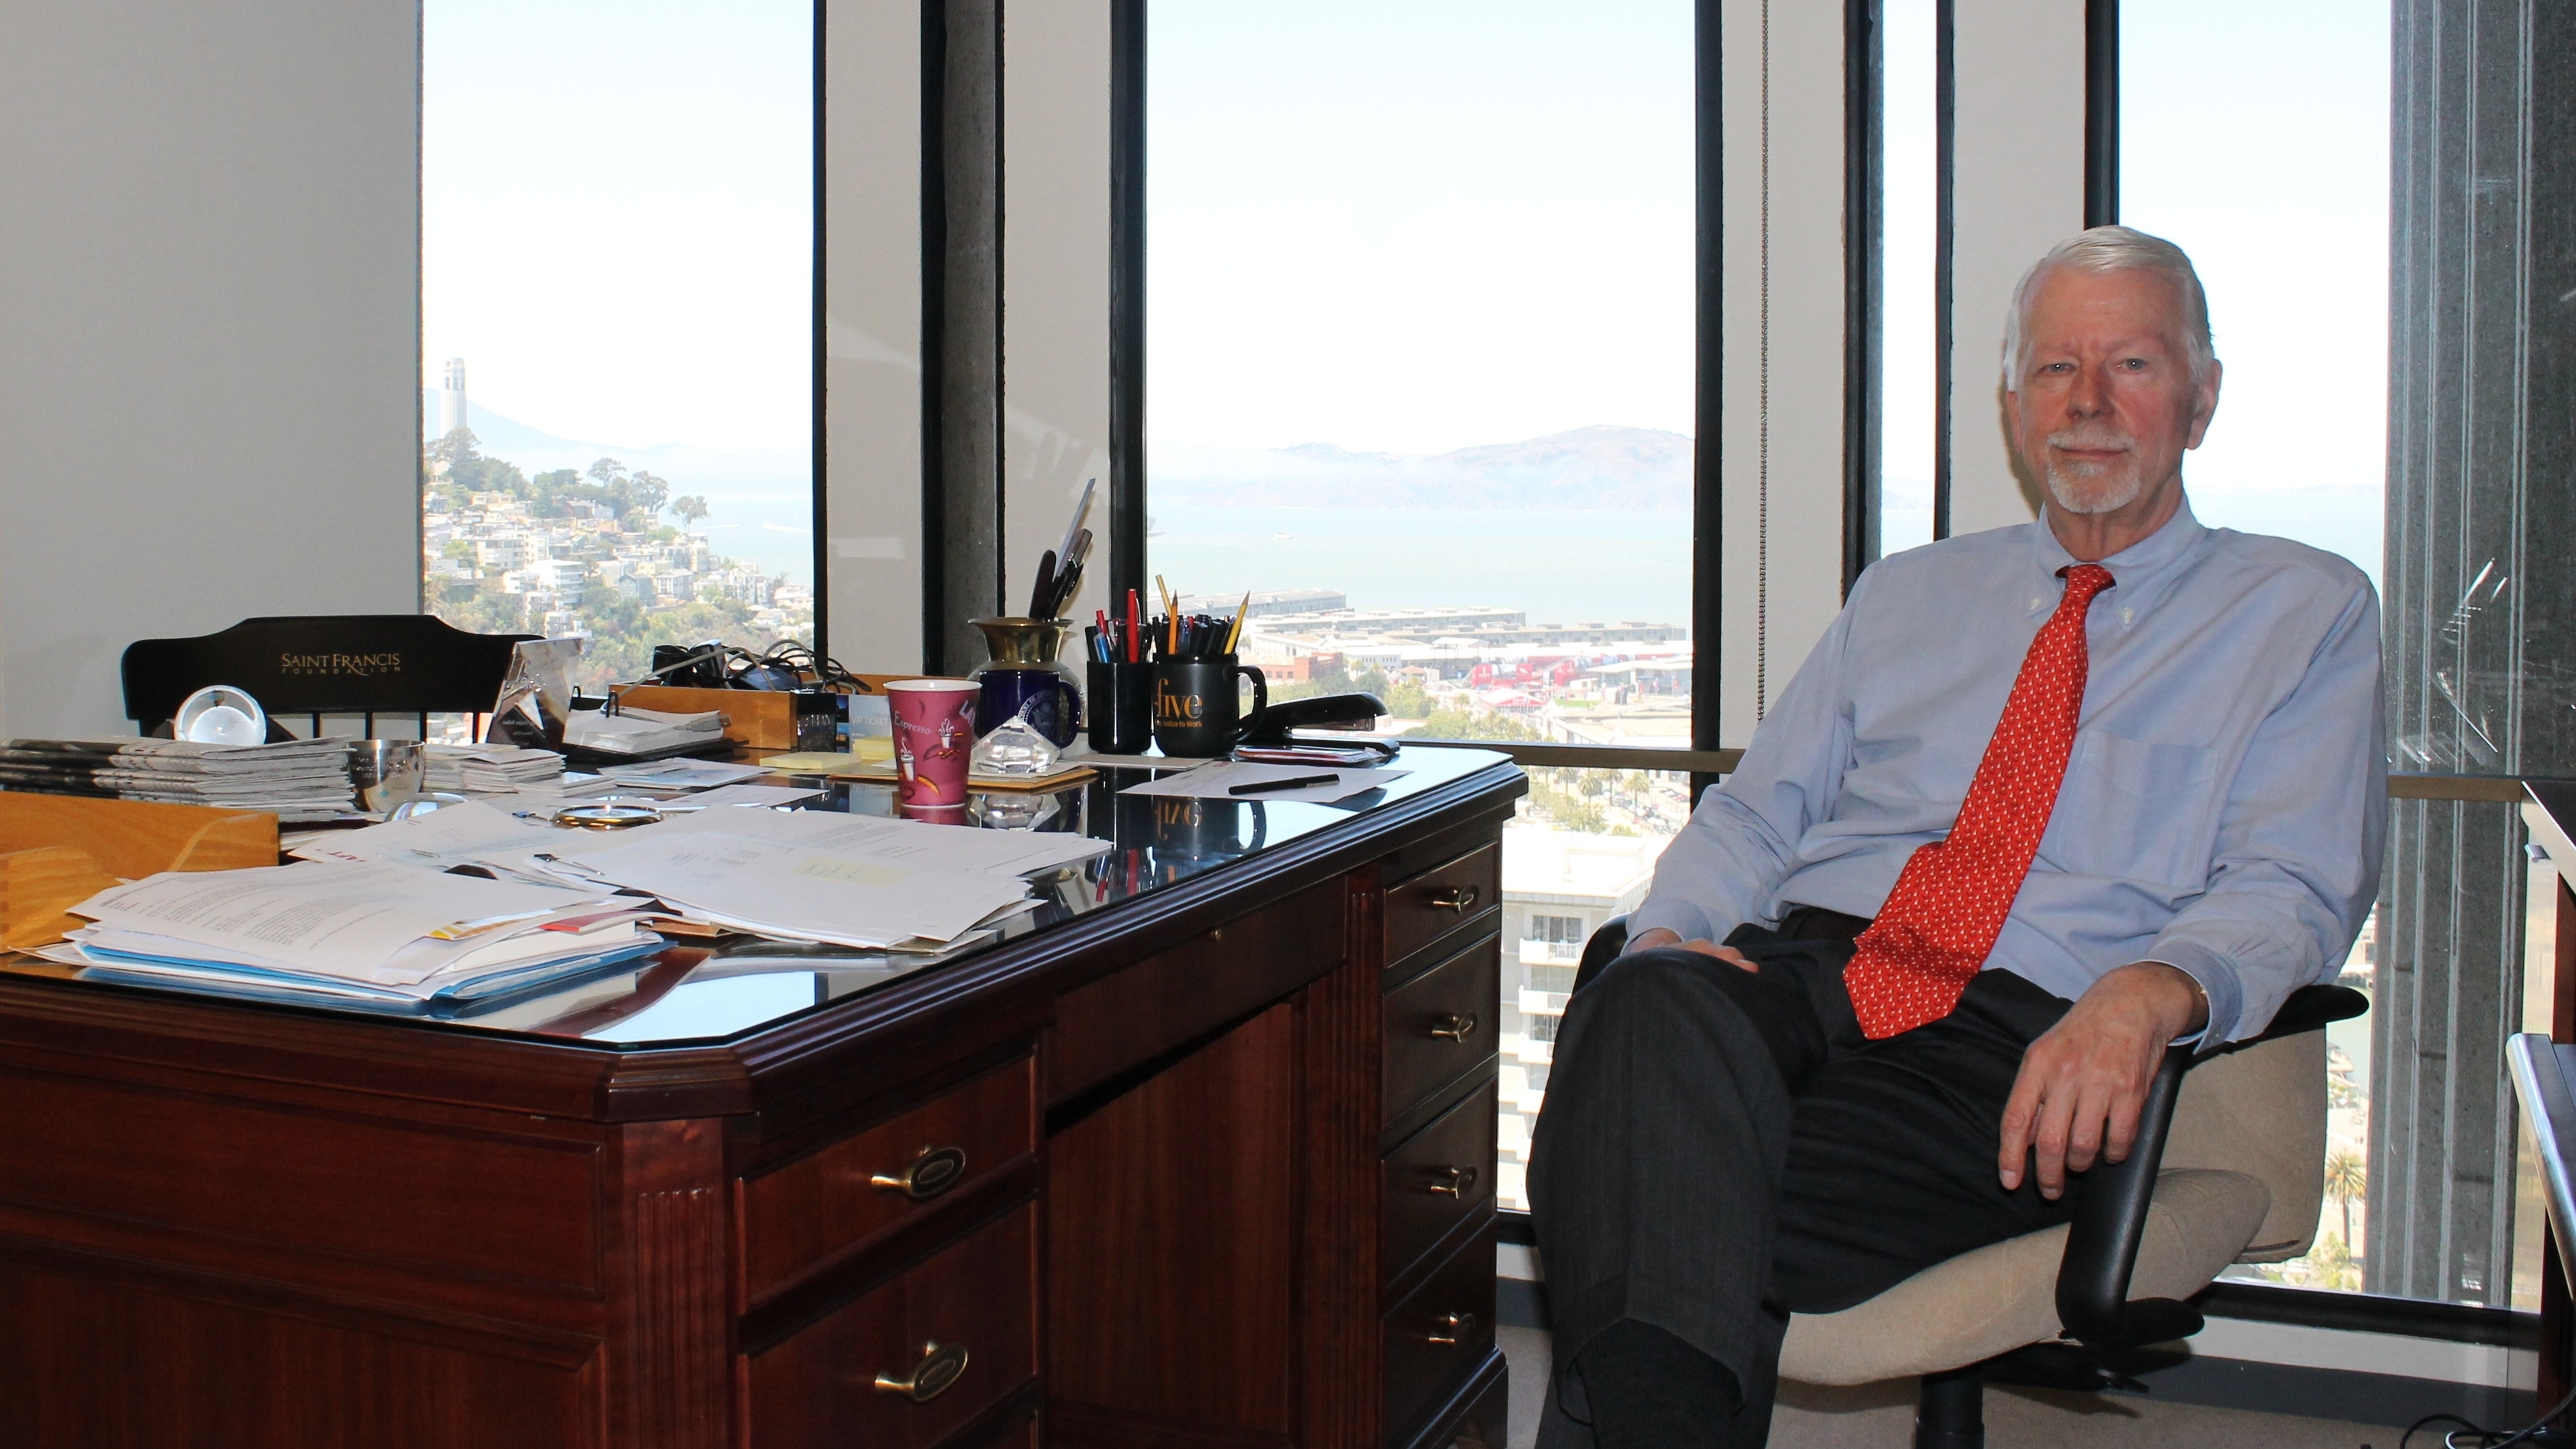 Former Judge Vaughn Walker in his office in San Francisco. He says he knew the Proposition 8 case would be important and would likely make its way to the Supreme Court.